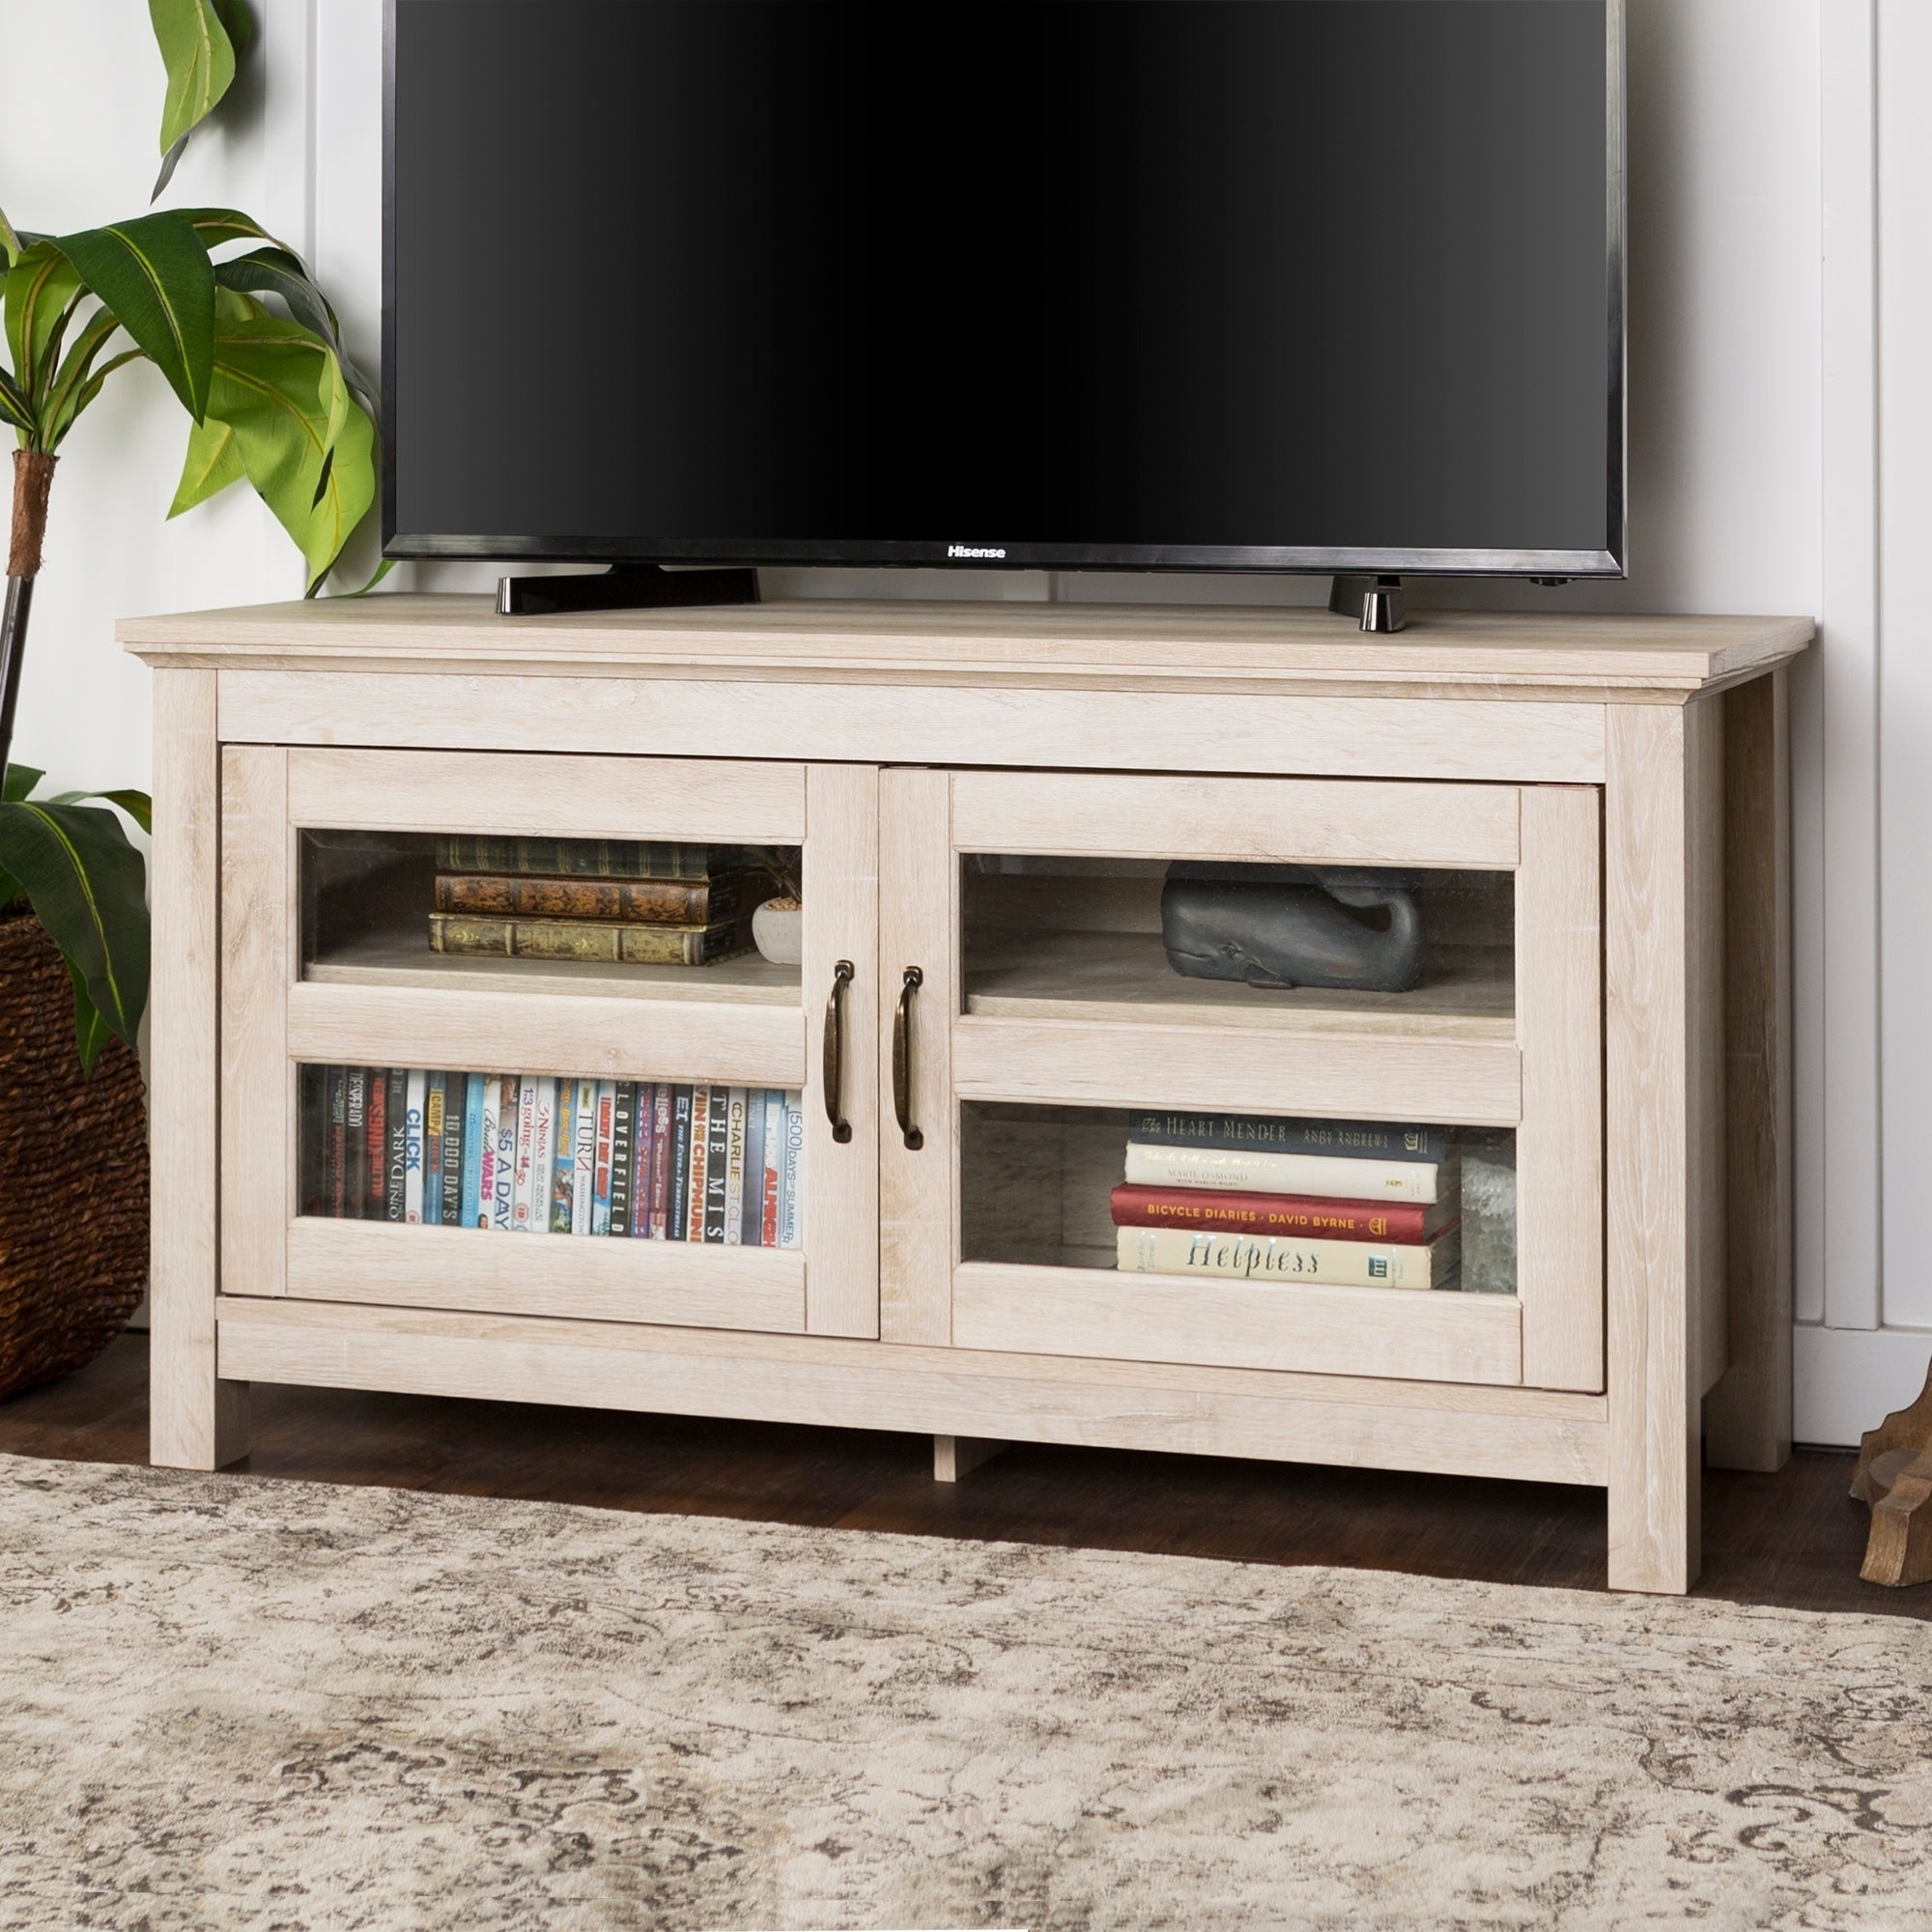 Shop 44 Inch Wood Tv Stand Storage Console Free Shipping On